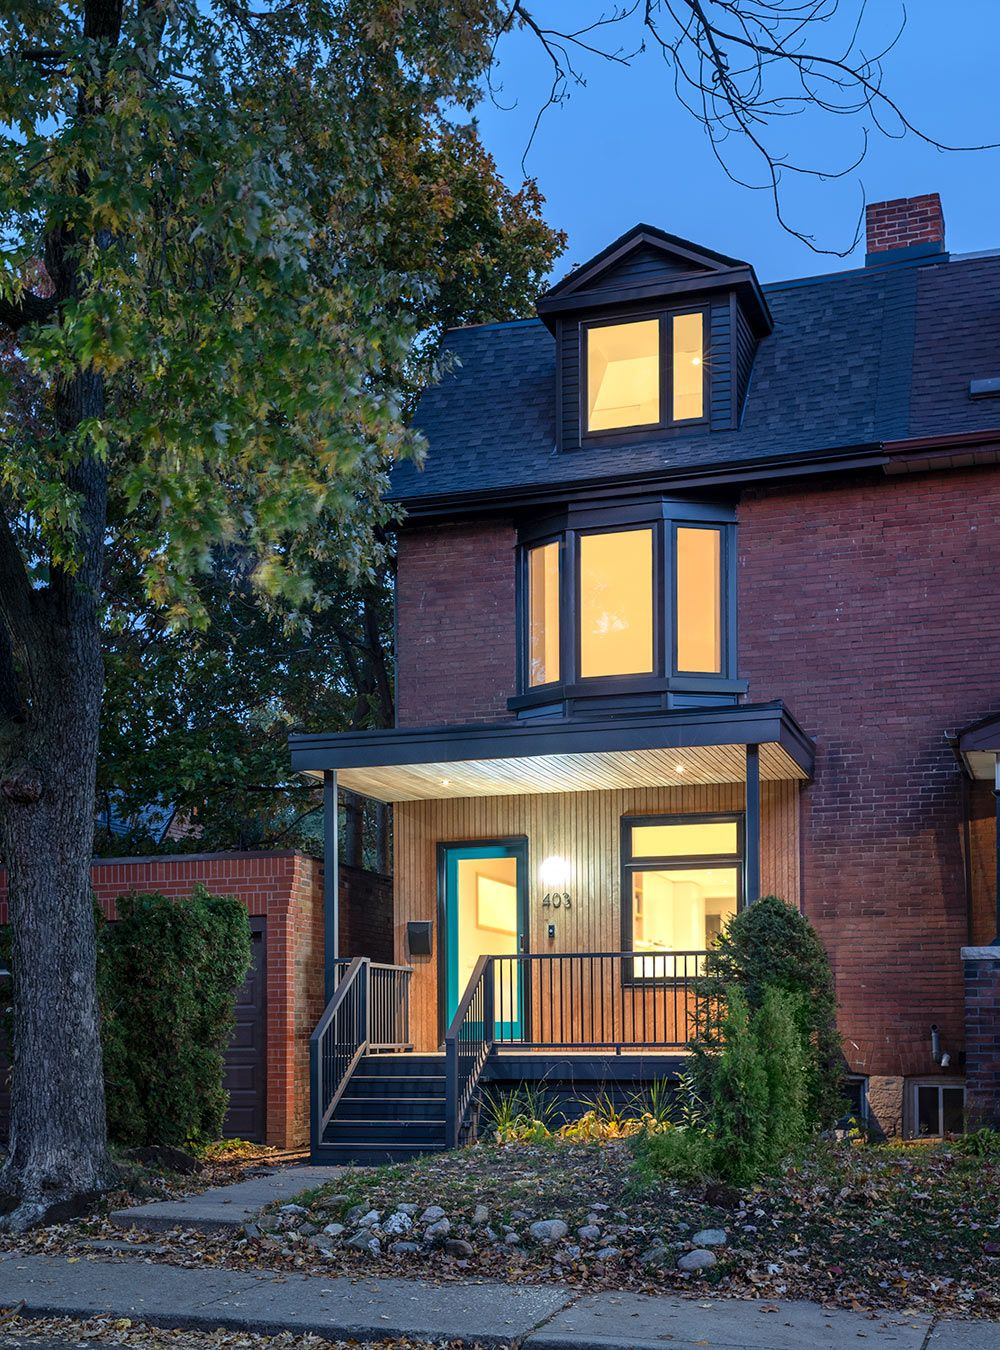 AAmp Studio Renovates and Adds Onto a 100-Year Old Townhouse in Toronto - Design Milk